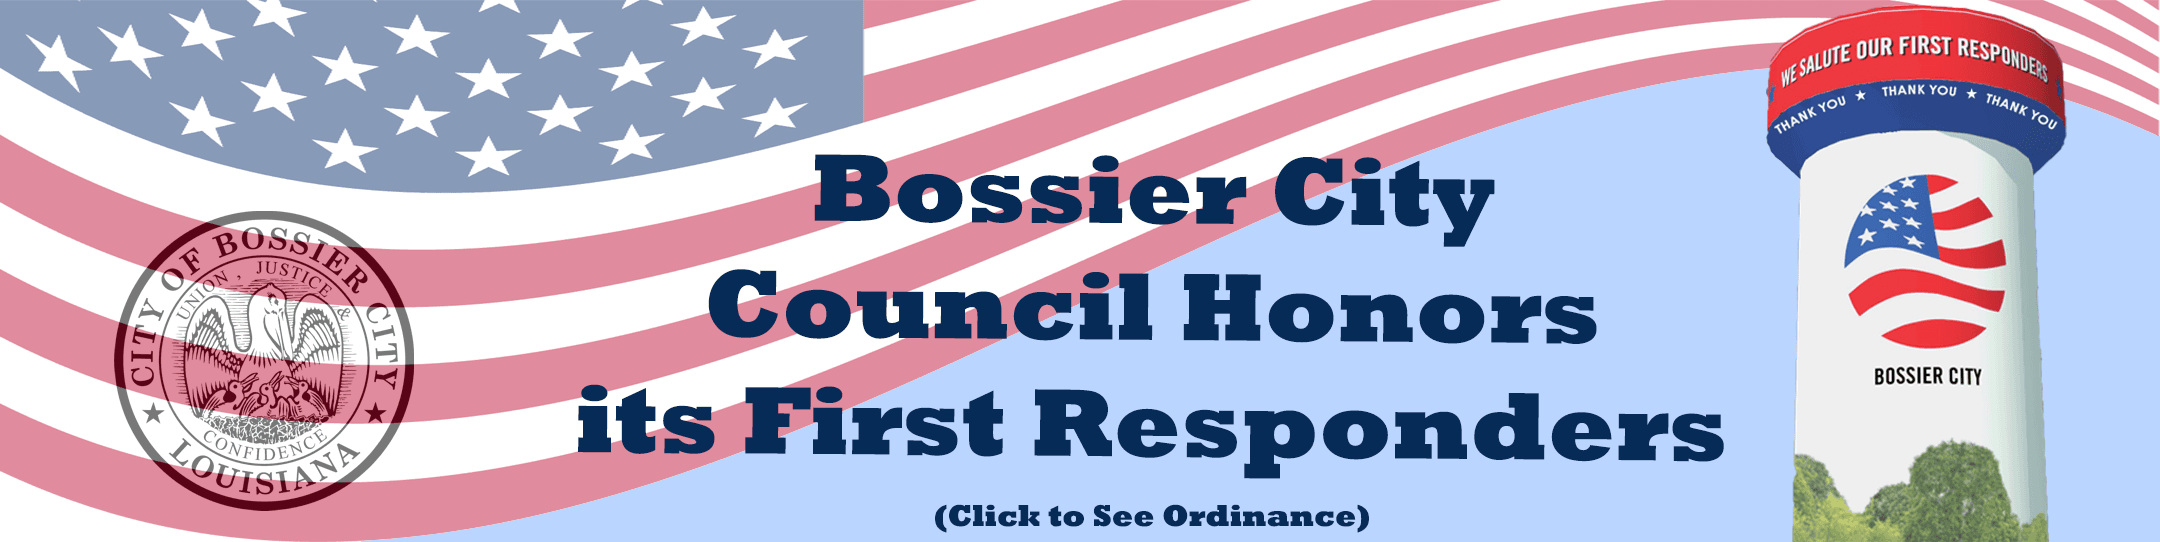 Bossier City Council Honors First Responders